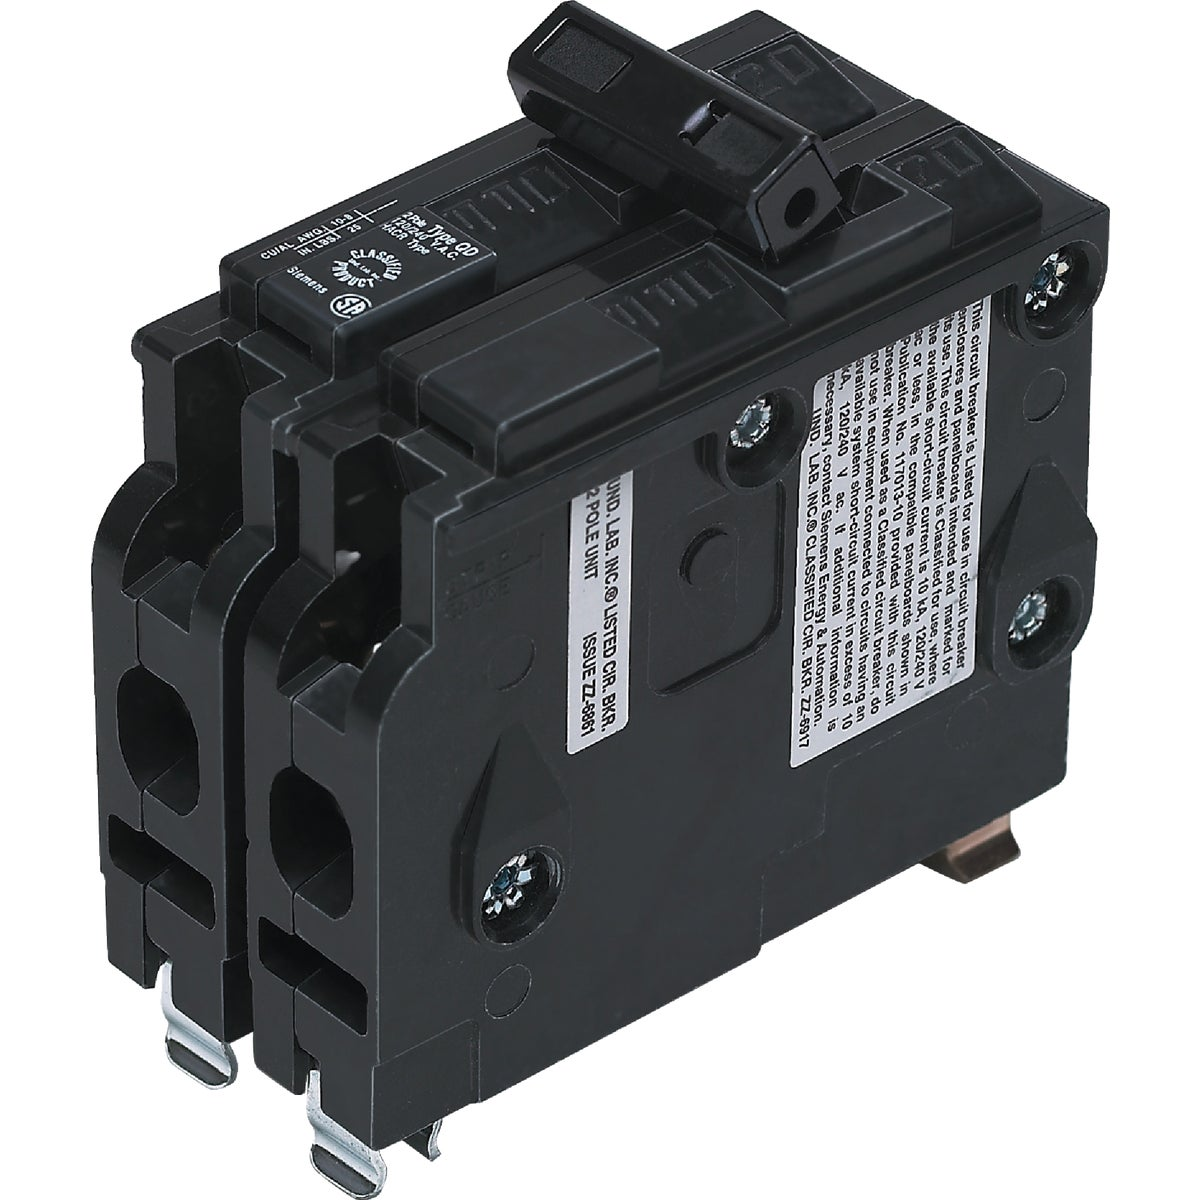 50A 2P CIRCUIT BREAKER - D250 by Connecticut Electric